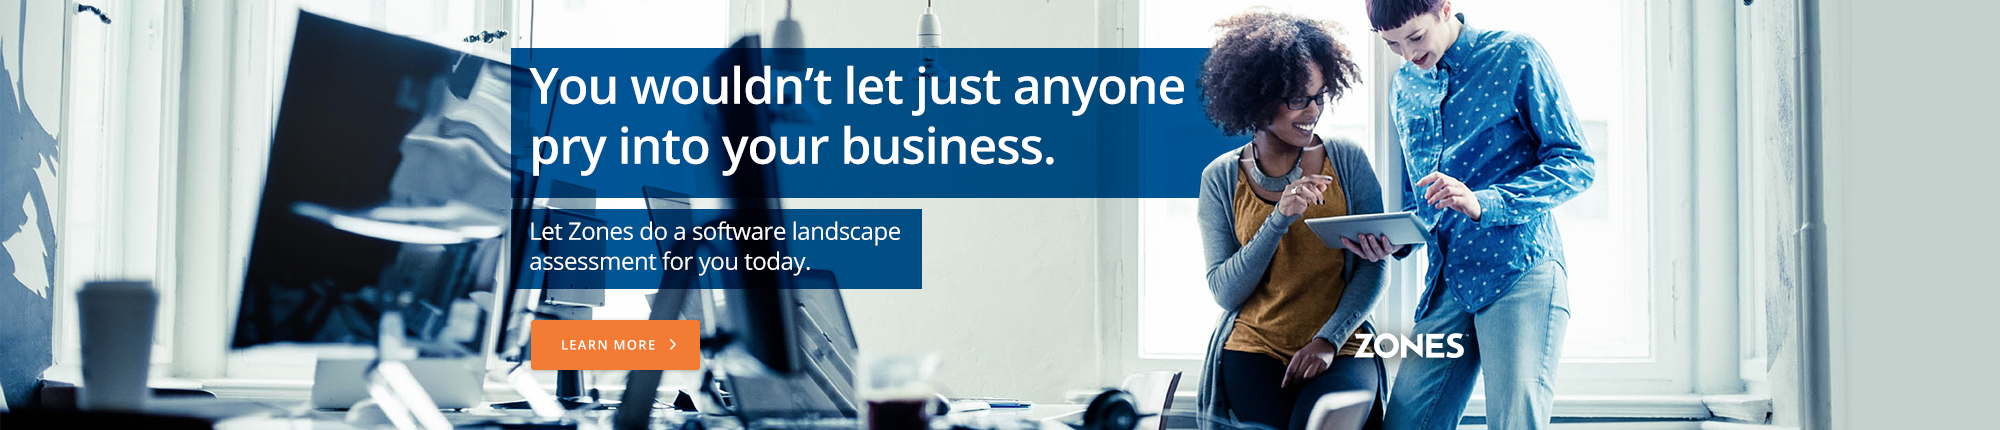 Let Zones do a software landscape assessment for you today.